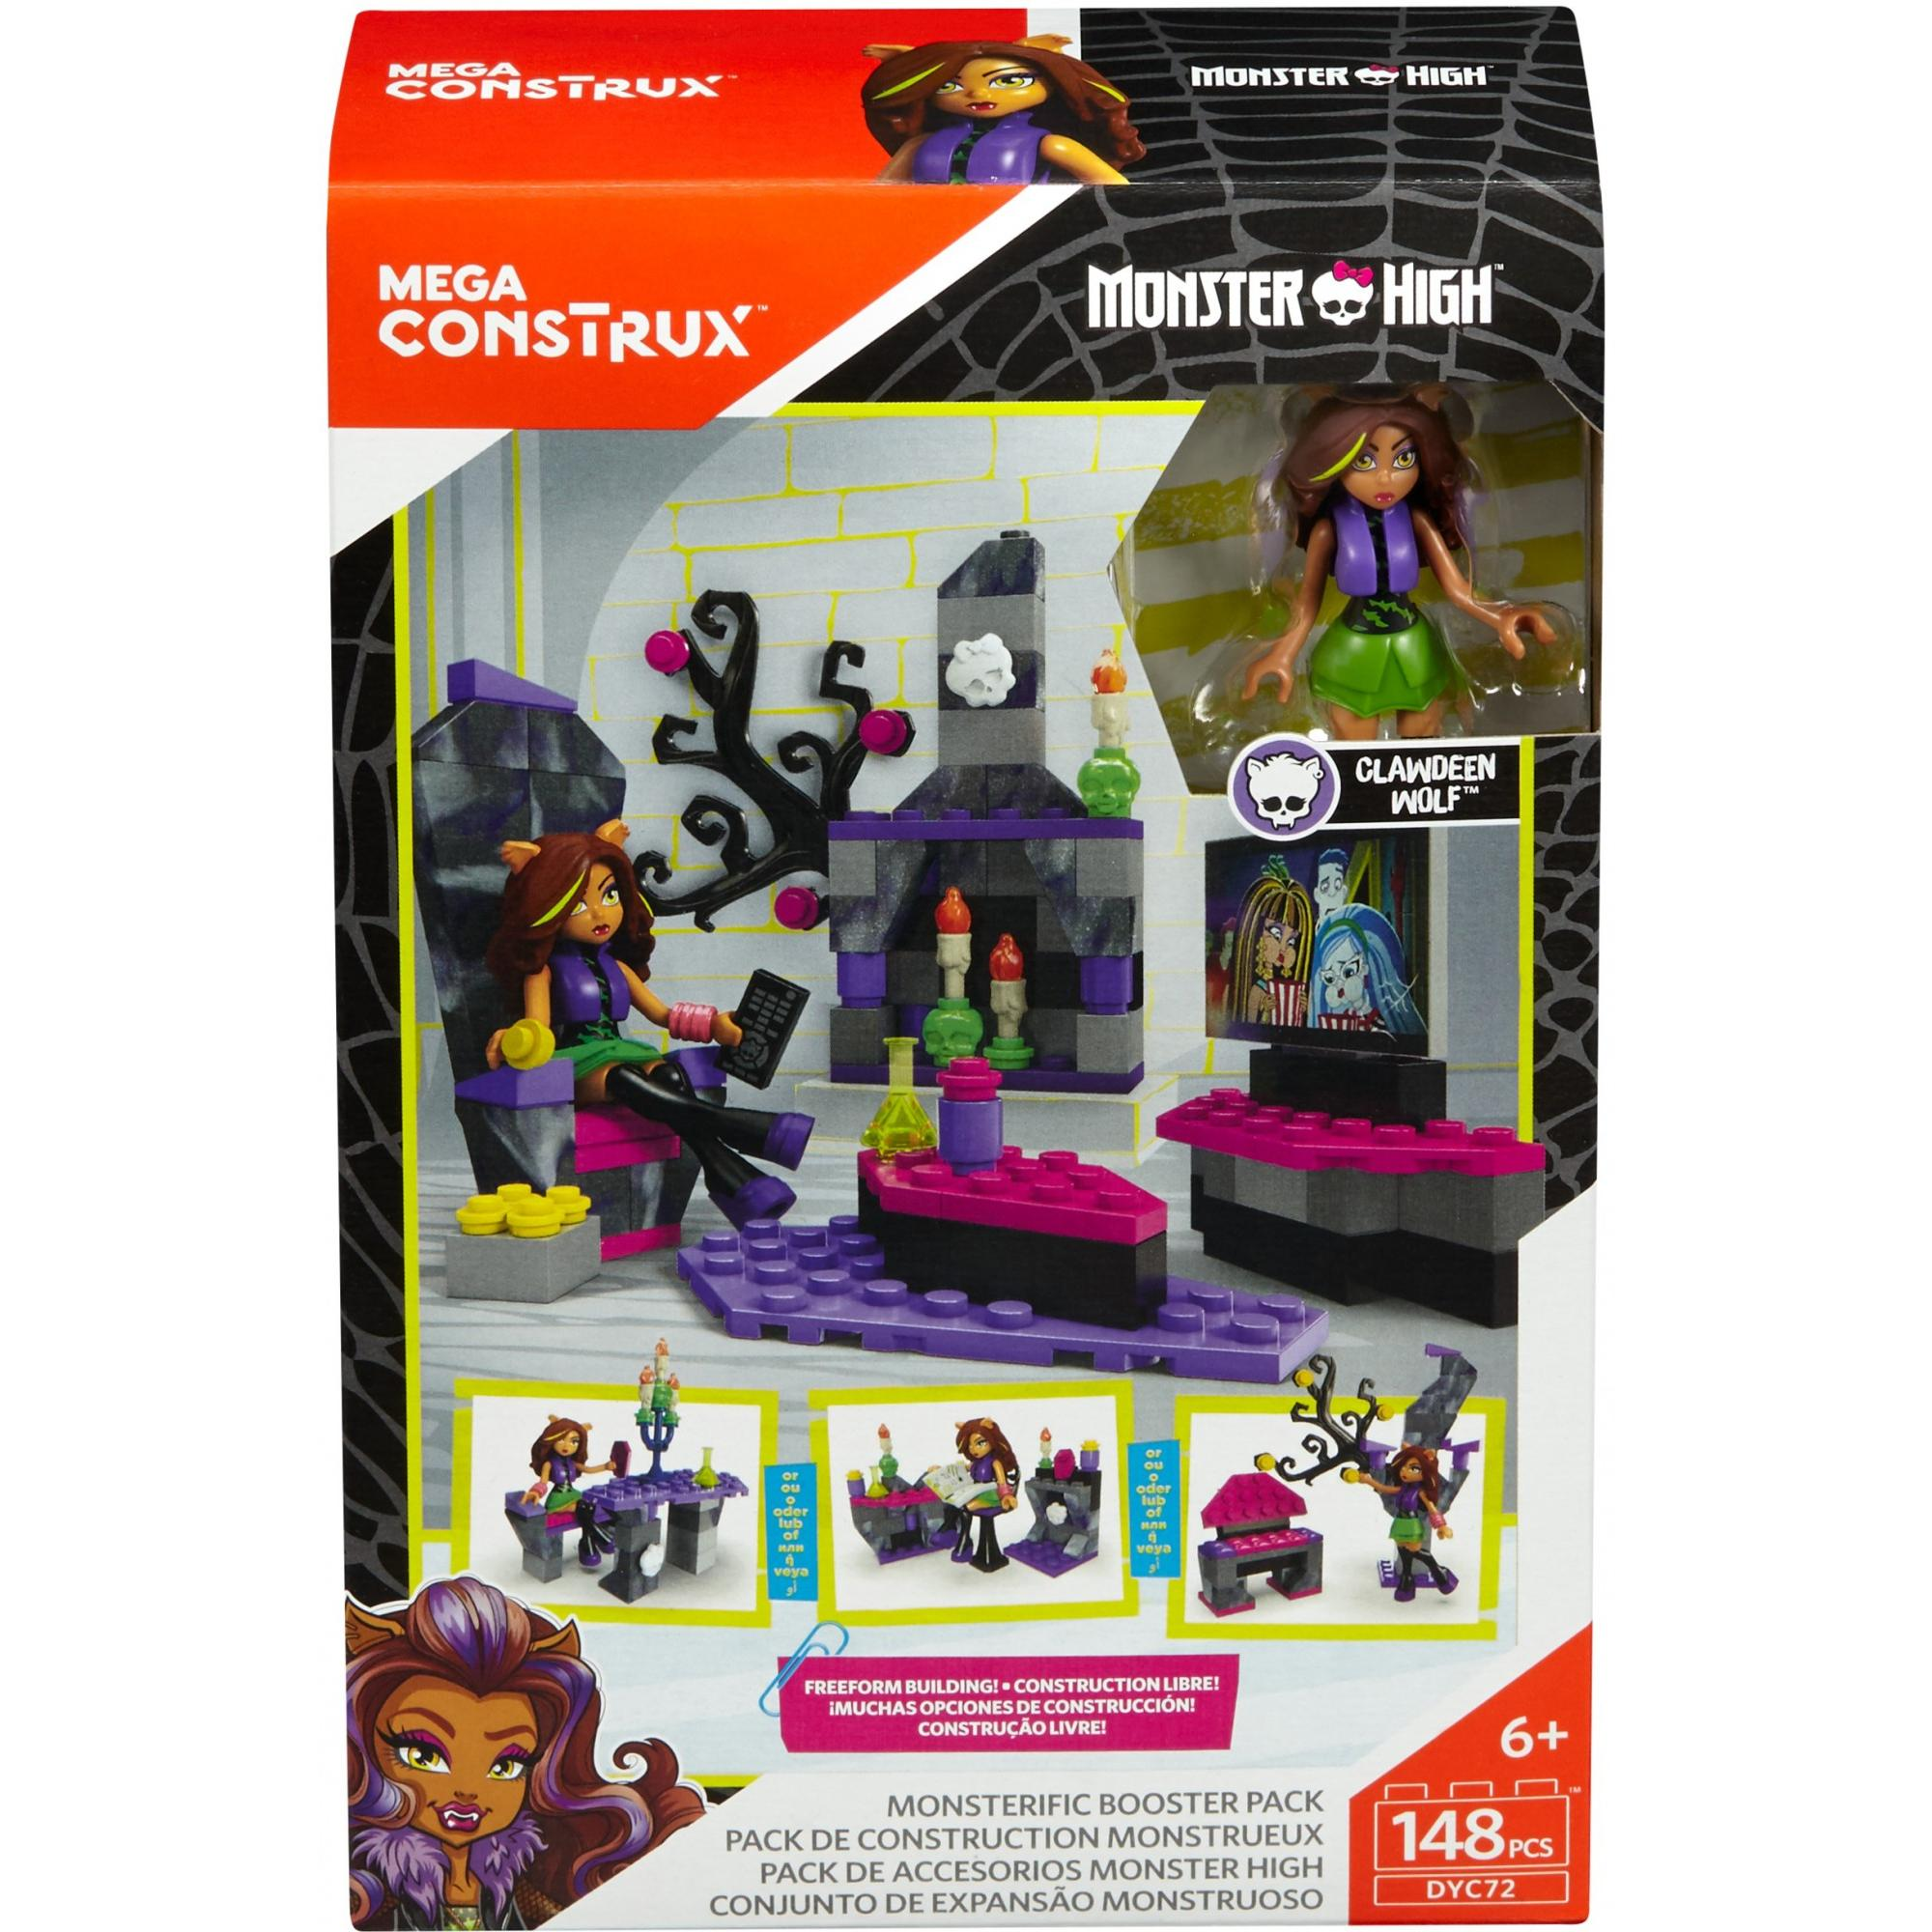 Mega Construx Monster High Booster Set by Mega Brands, Inc.